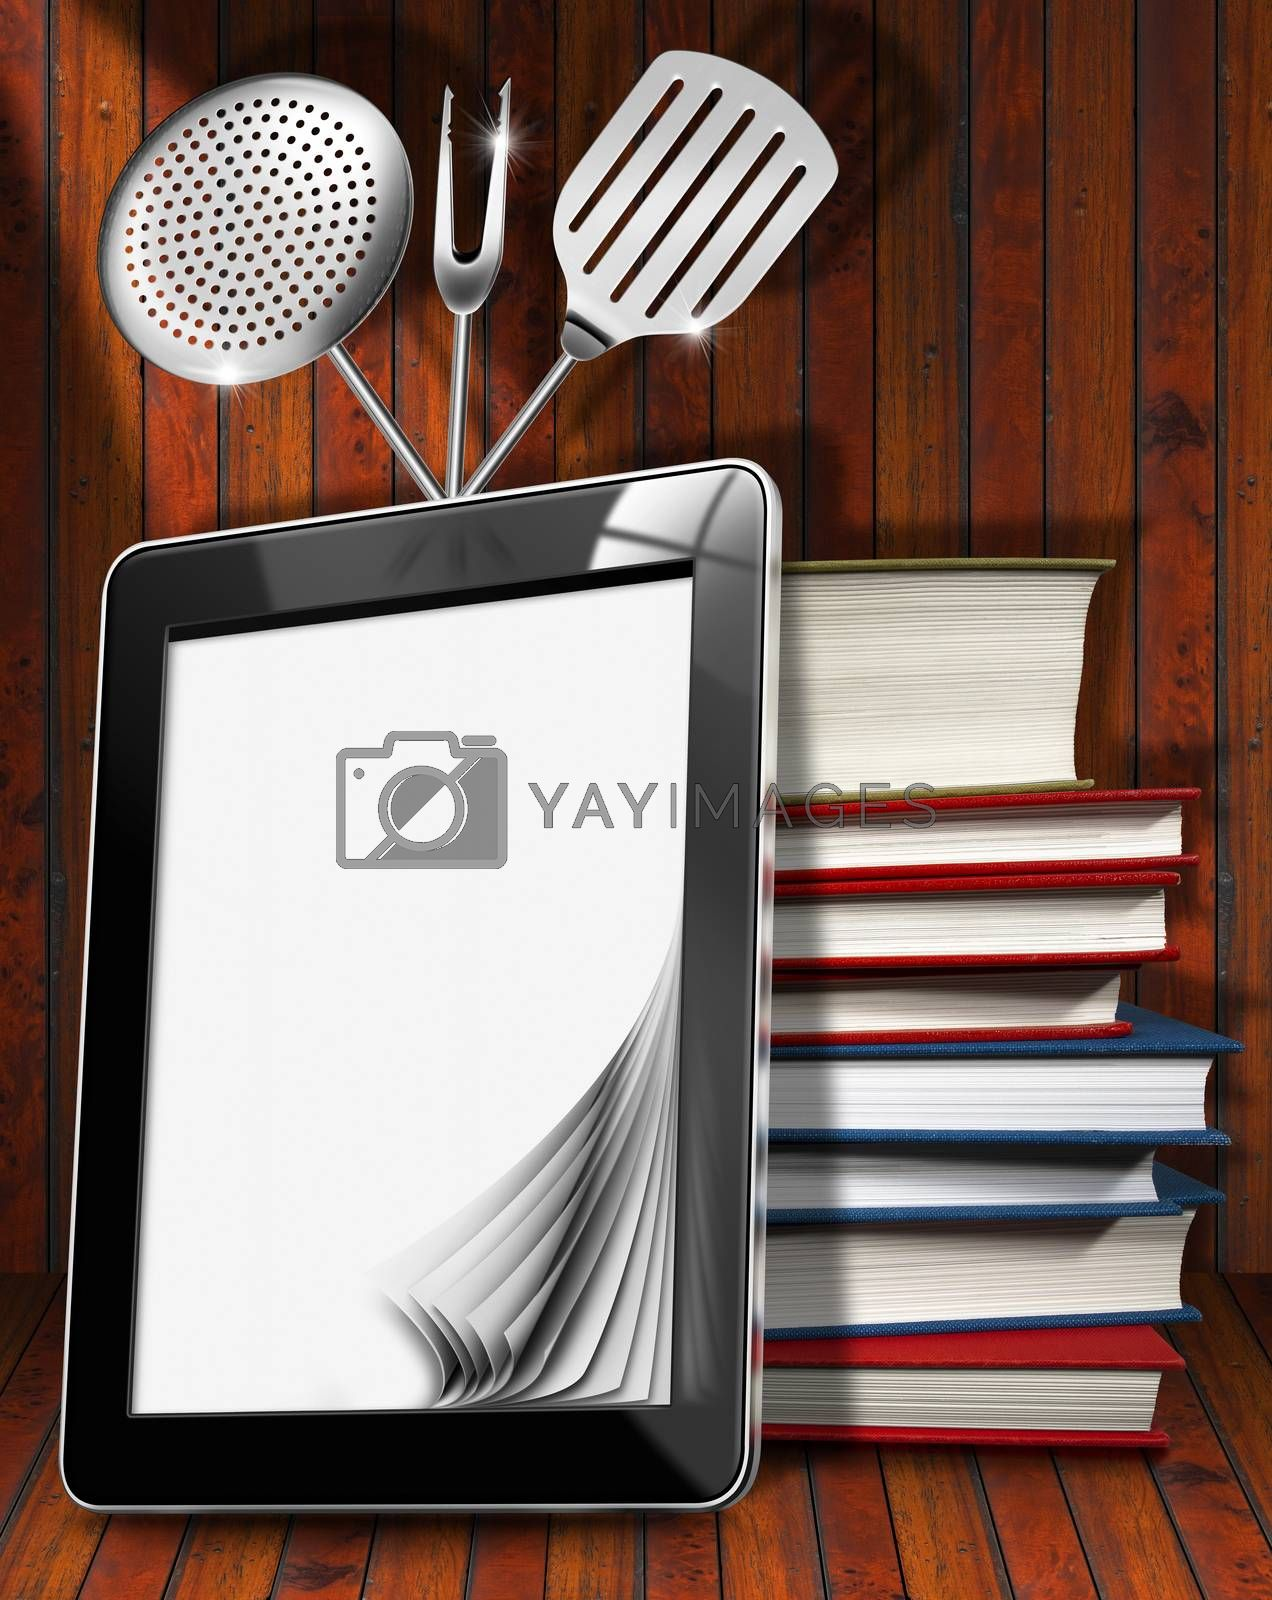 Black tablet computer with blank pages and stack of books in a kitchen, on wooden wall with kitchen utensils. For a digital recipes or menu